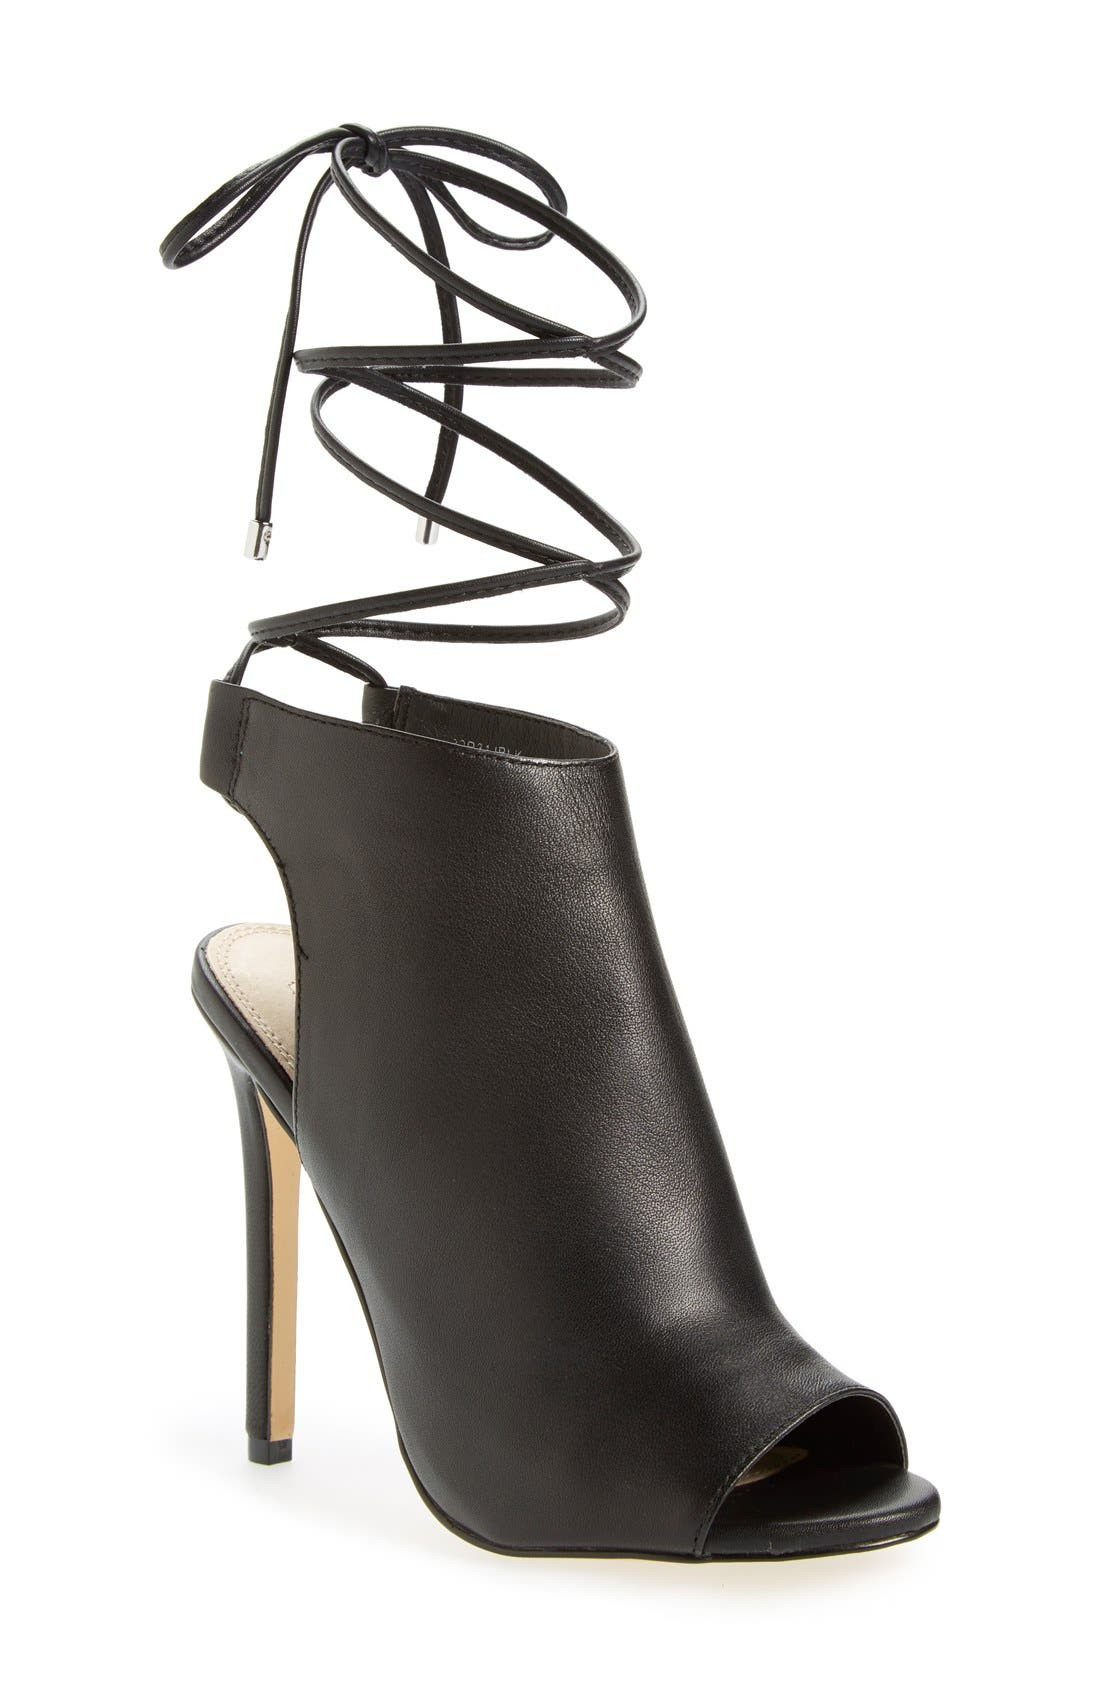 Alternate Image 1 Selected - Topshop 'Robyn' Open Toe Sandal (Women)